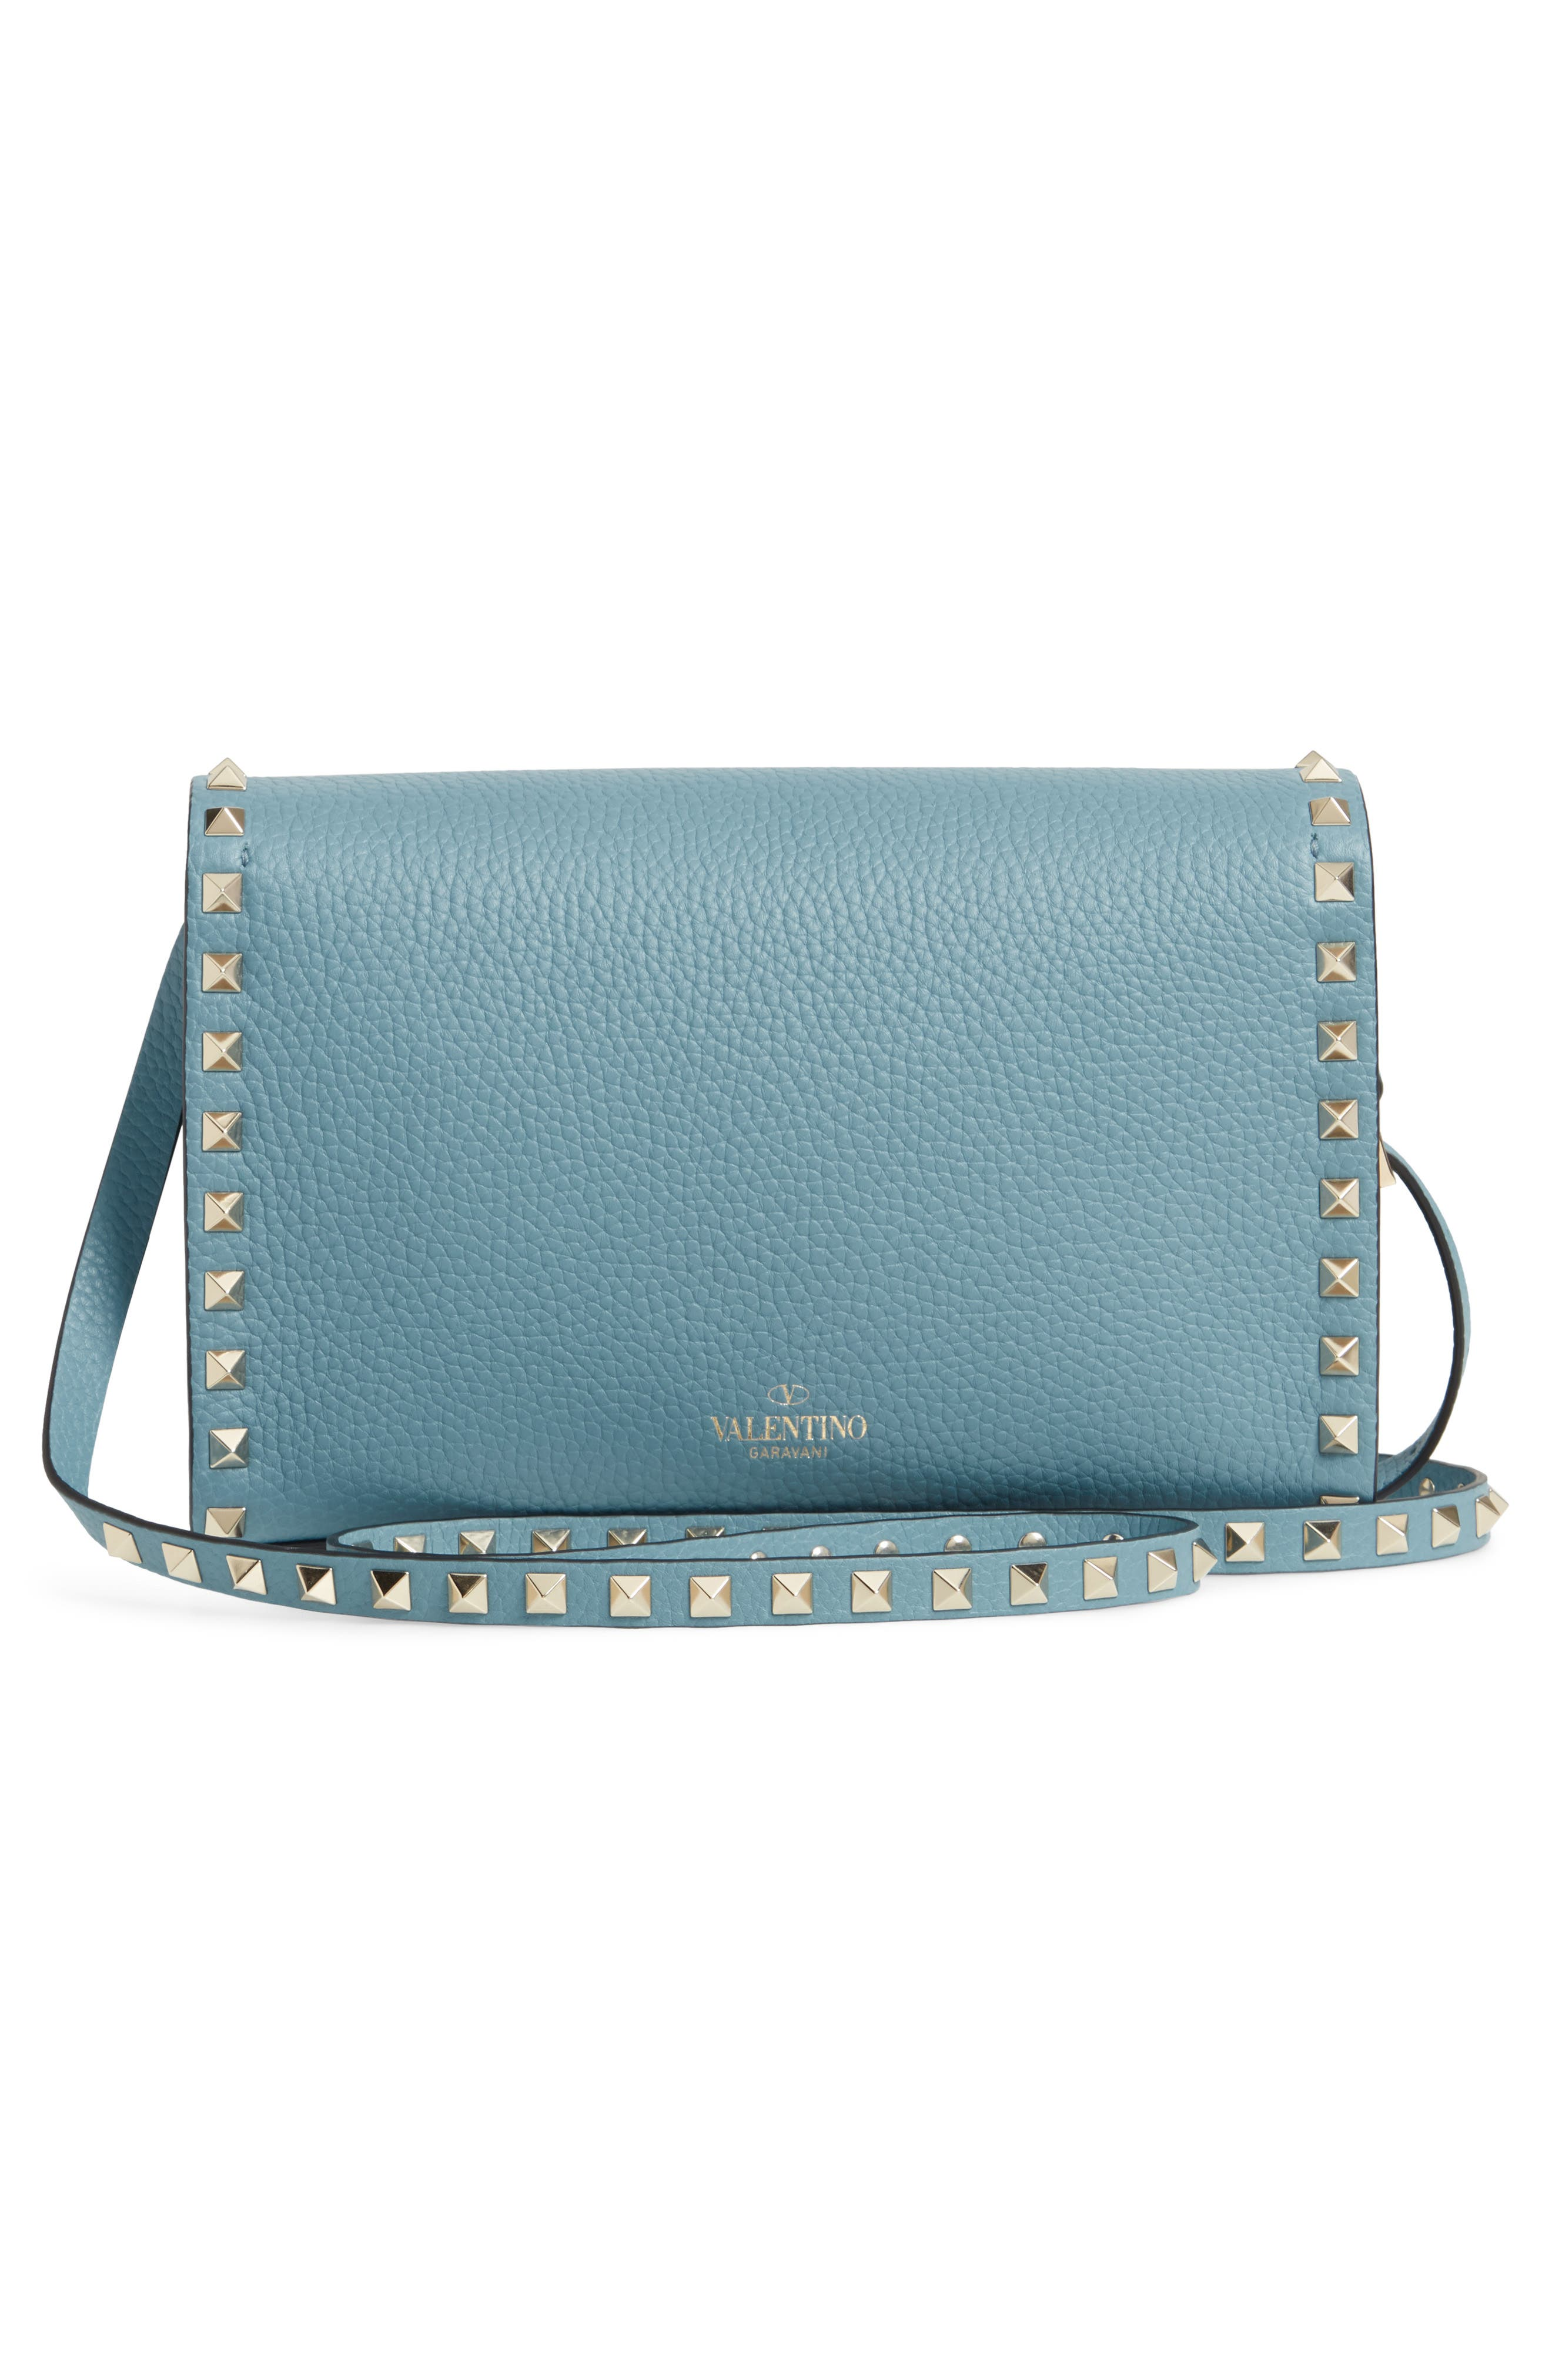 VALENTINO GARAVANI, Medium Rockstud Leather Crossbody Bag, Alternate thumbnail 3, color, 485